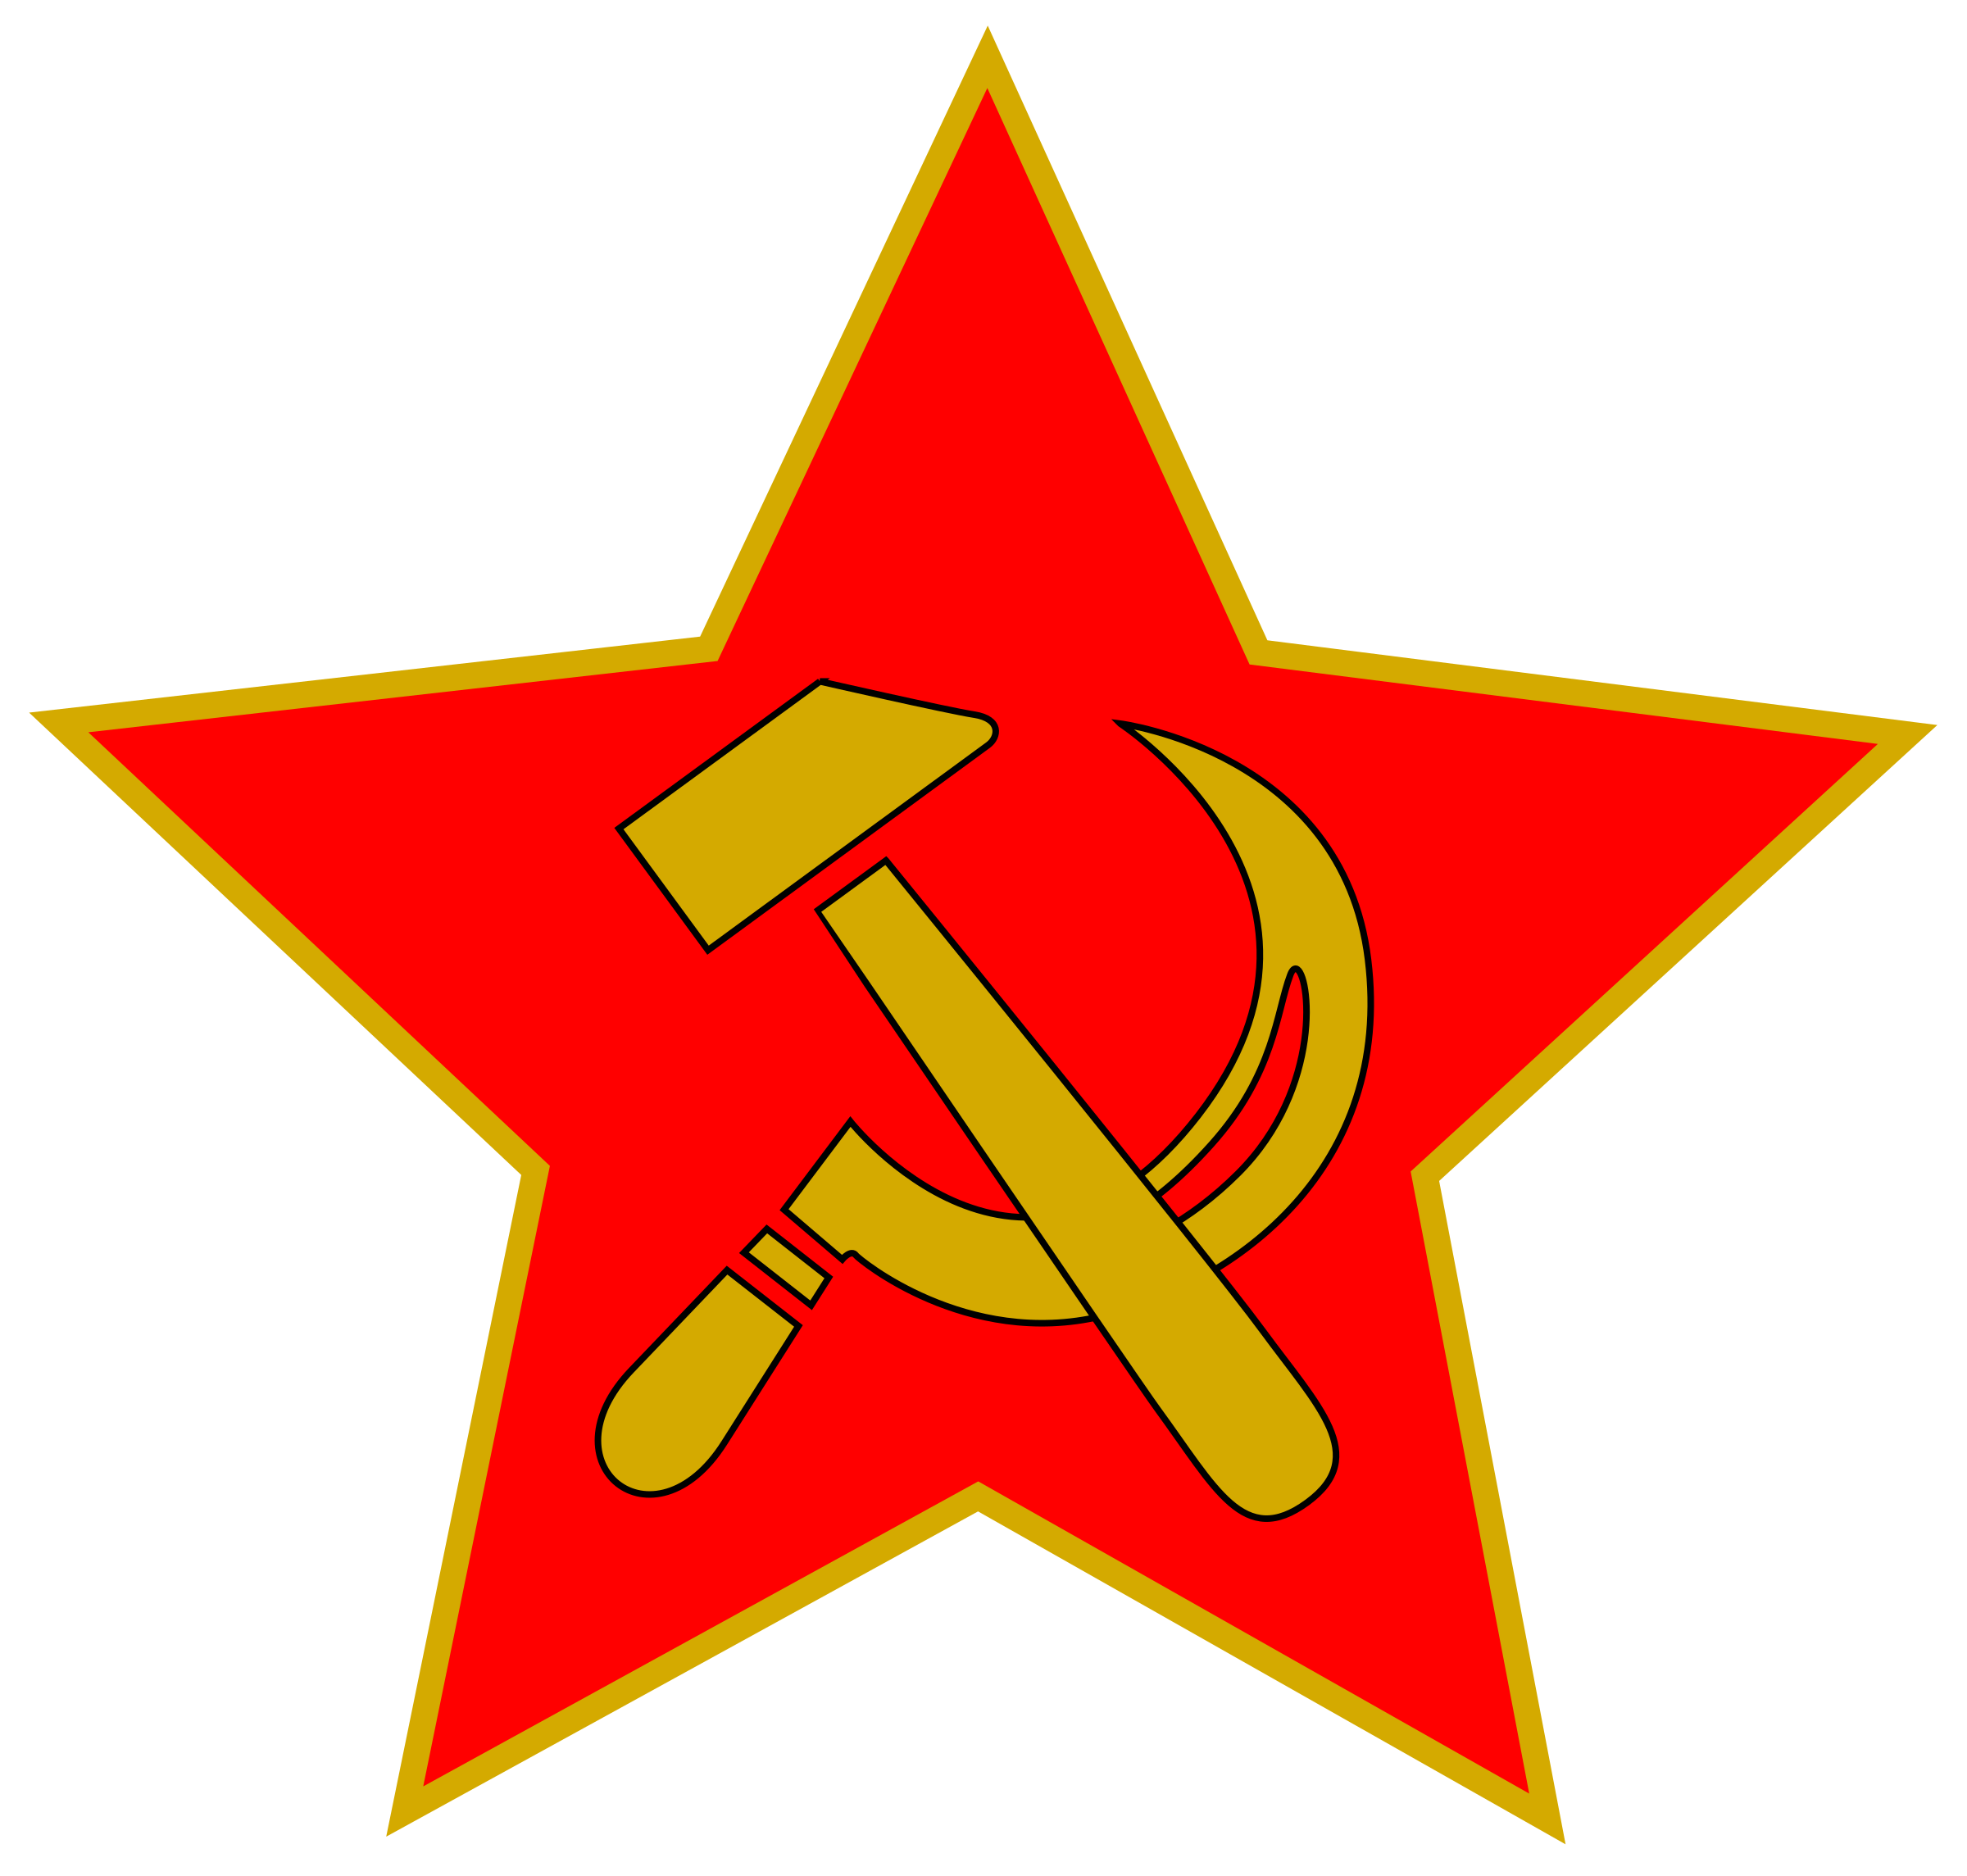 Hammer and Sickle in Star by worker